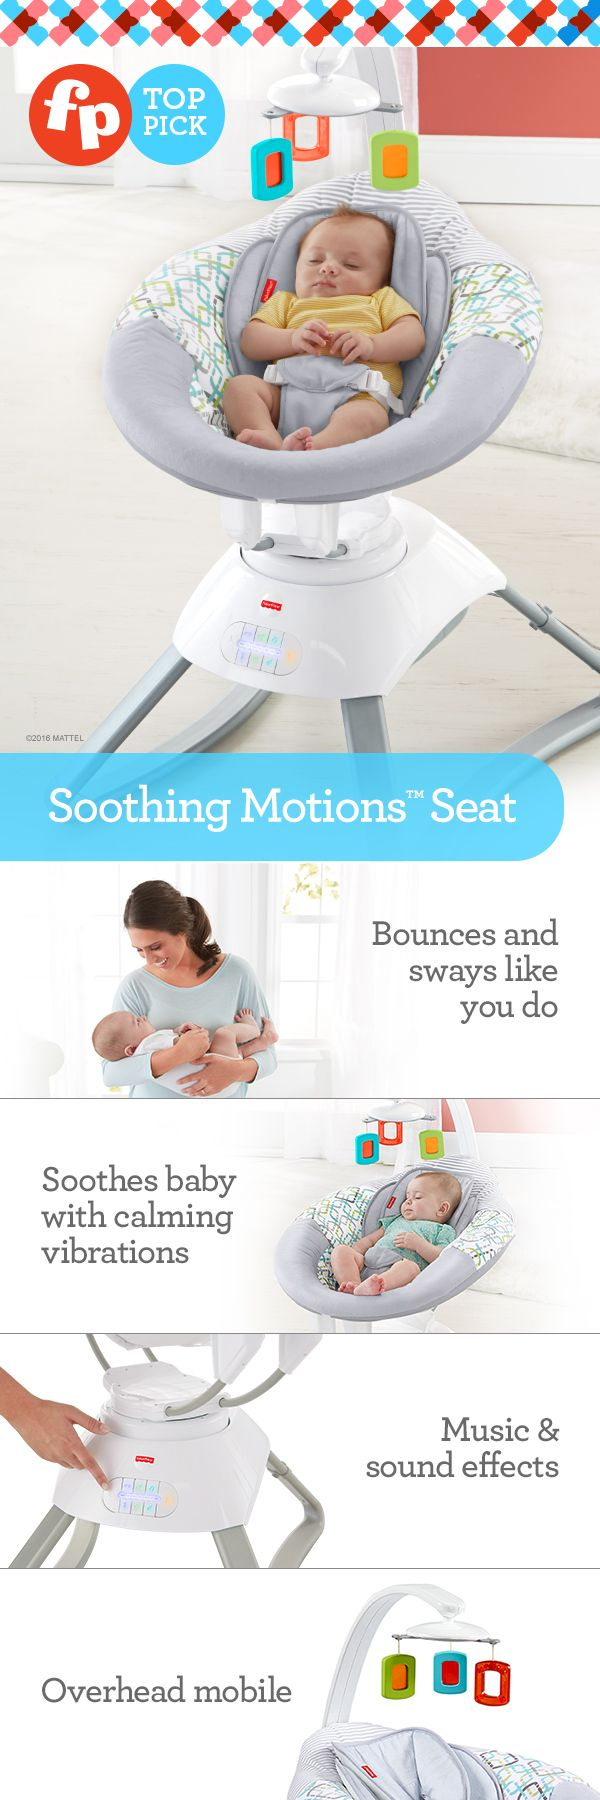 Bounces & sways just like you do! Sweet serenity is closer than you think – with a soothing seat inspired by the natural motion of mom or dad. Customize the motion to whatever baby likes best. Bounce, sway, or bounce and sway together, in the deep, cozy baby seat. Calming vibrations, 10 songs and nature sounds add to the serene scene.